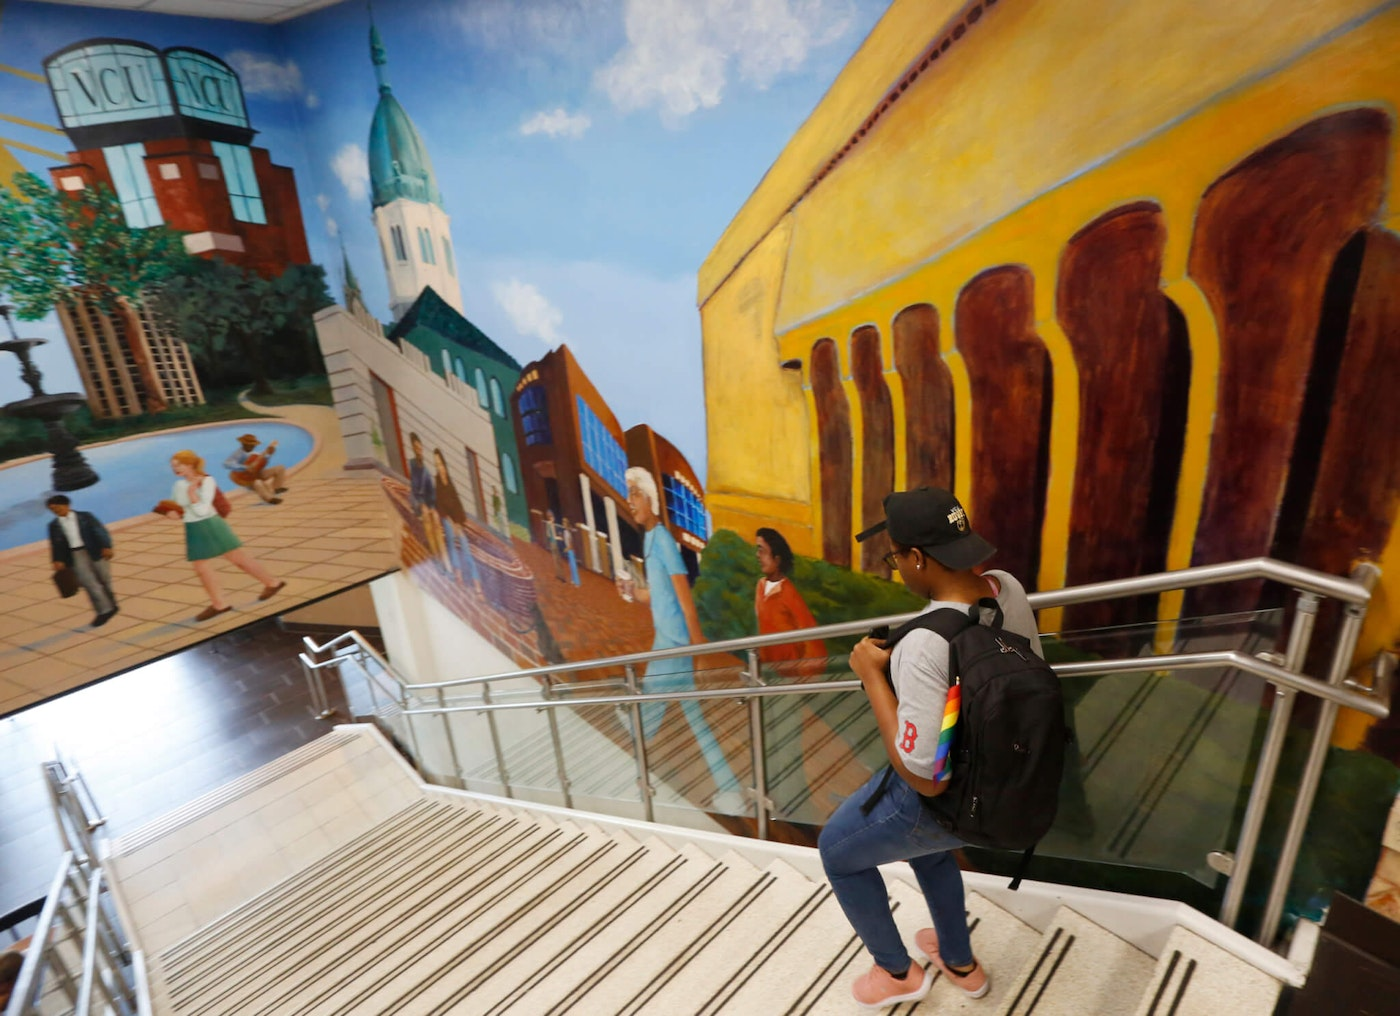 A student walks past a mural in the library at Virginia Commonwealth University in Richmond, Va. (AP Photo/Steve Helber)